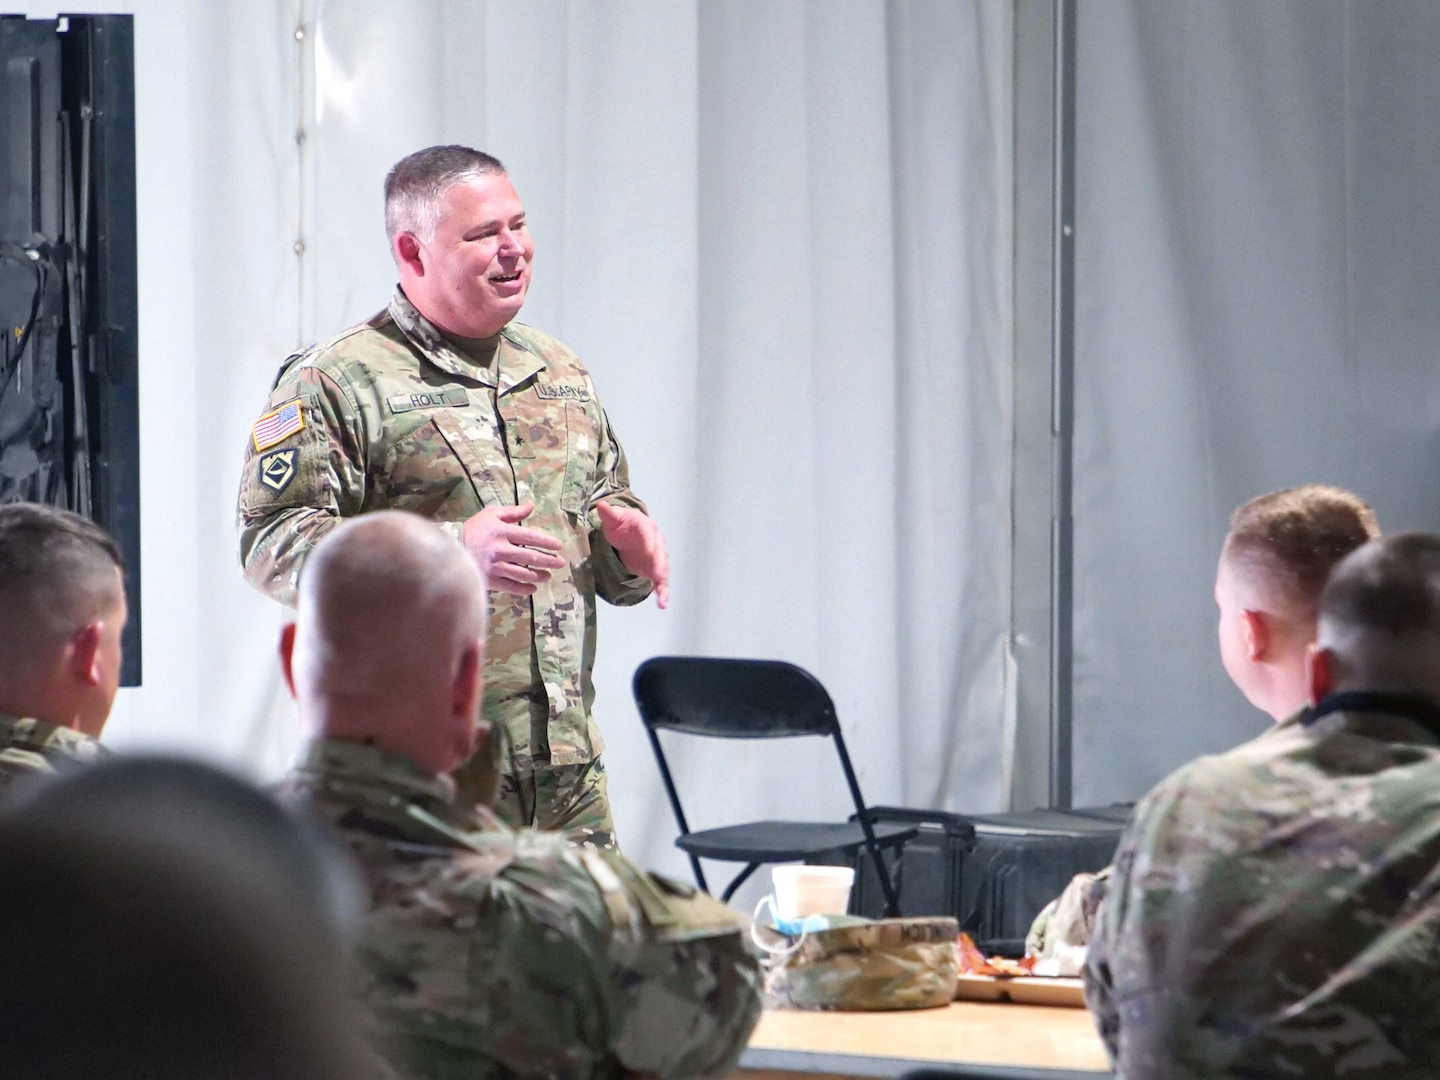 Brig. Gen. Holt visits WV Troops Prior to Middle East Deployment. (Courtesy photo provided)